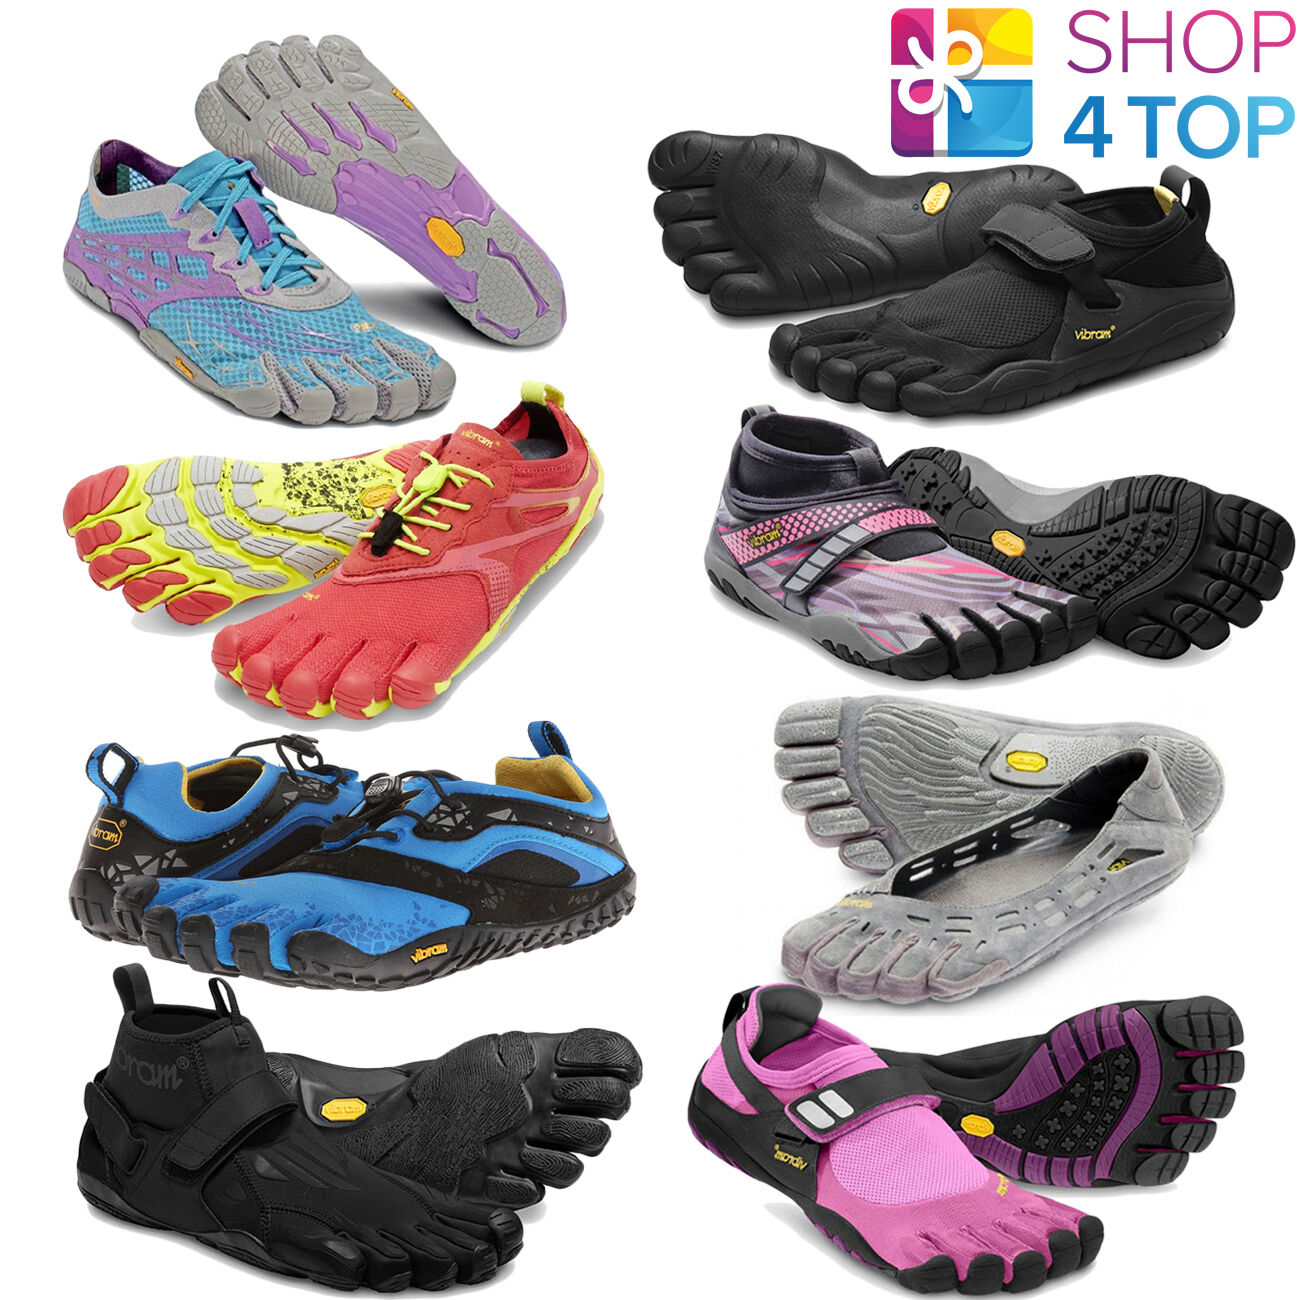 VIBRAM FIVEFINGERS WOMENS SHOES RUNNING BAREFOOT SPORT ATHLETIC FIVE FINGERS NEW